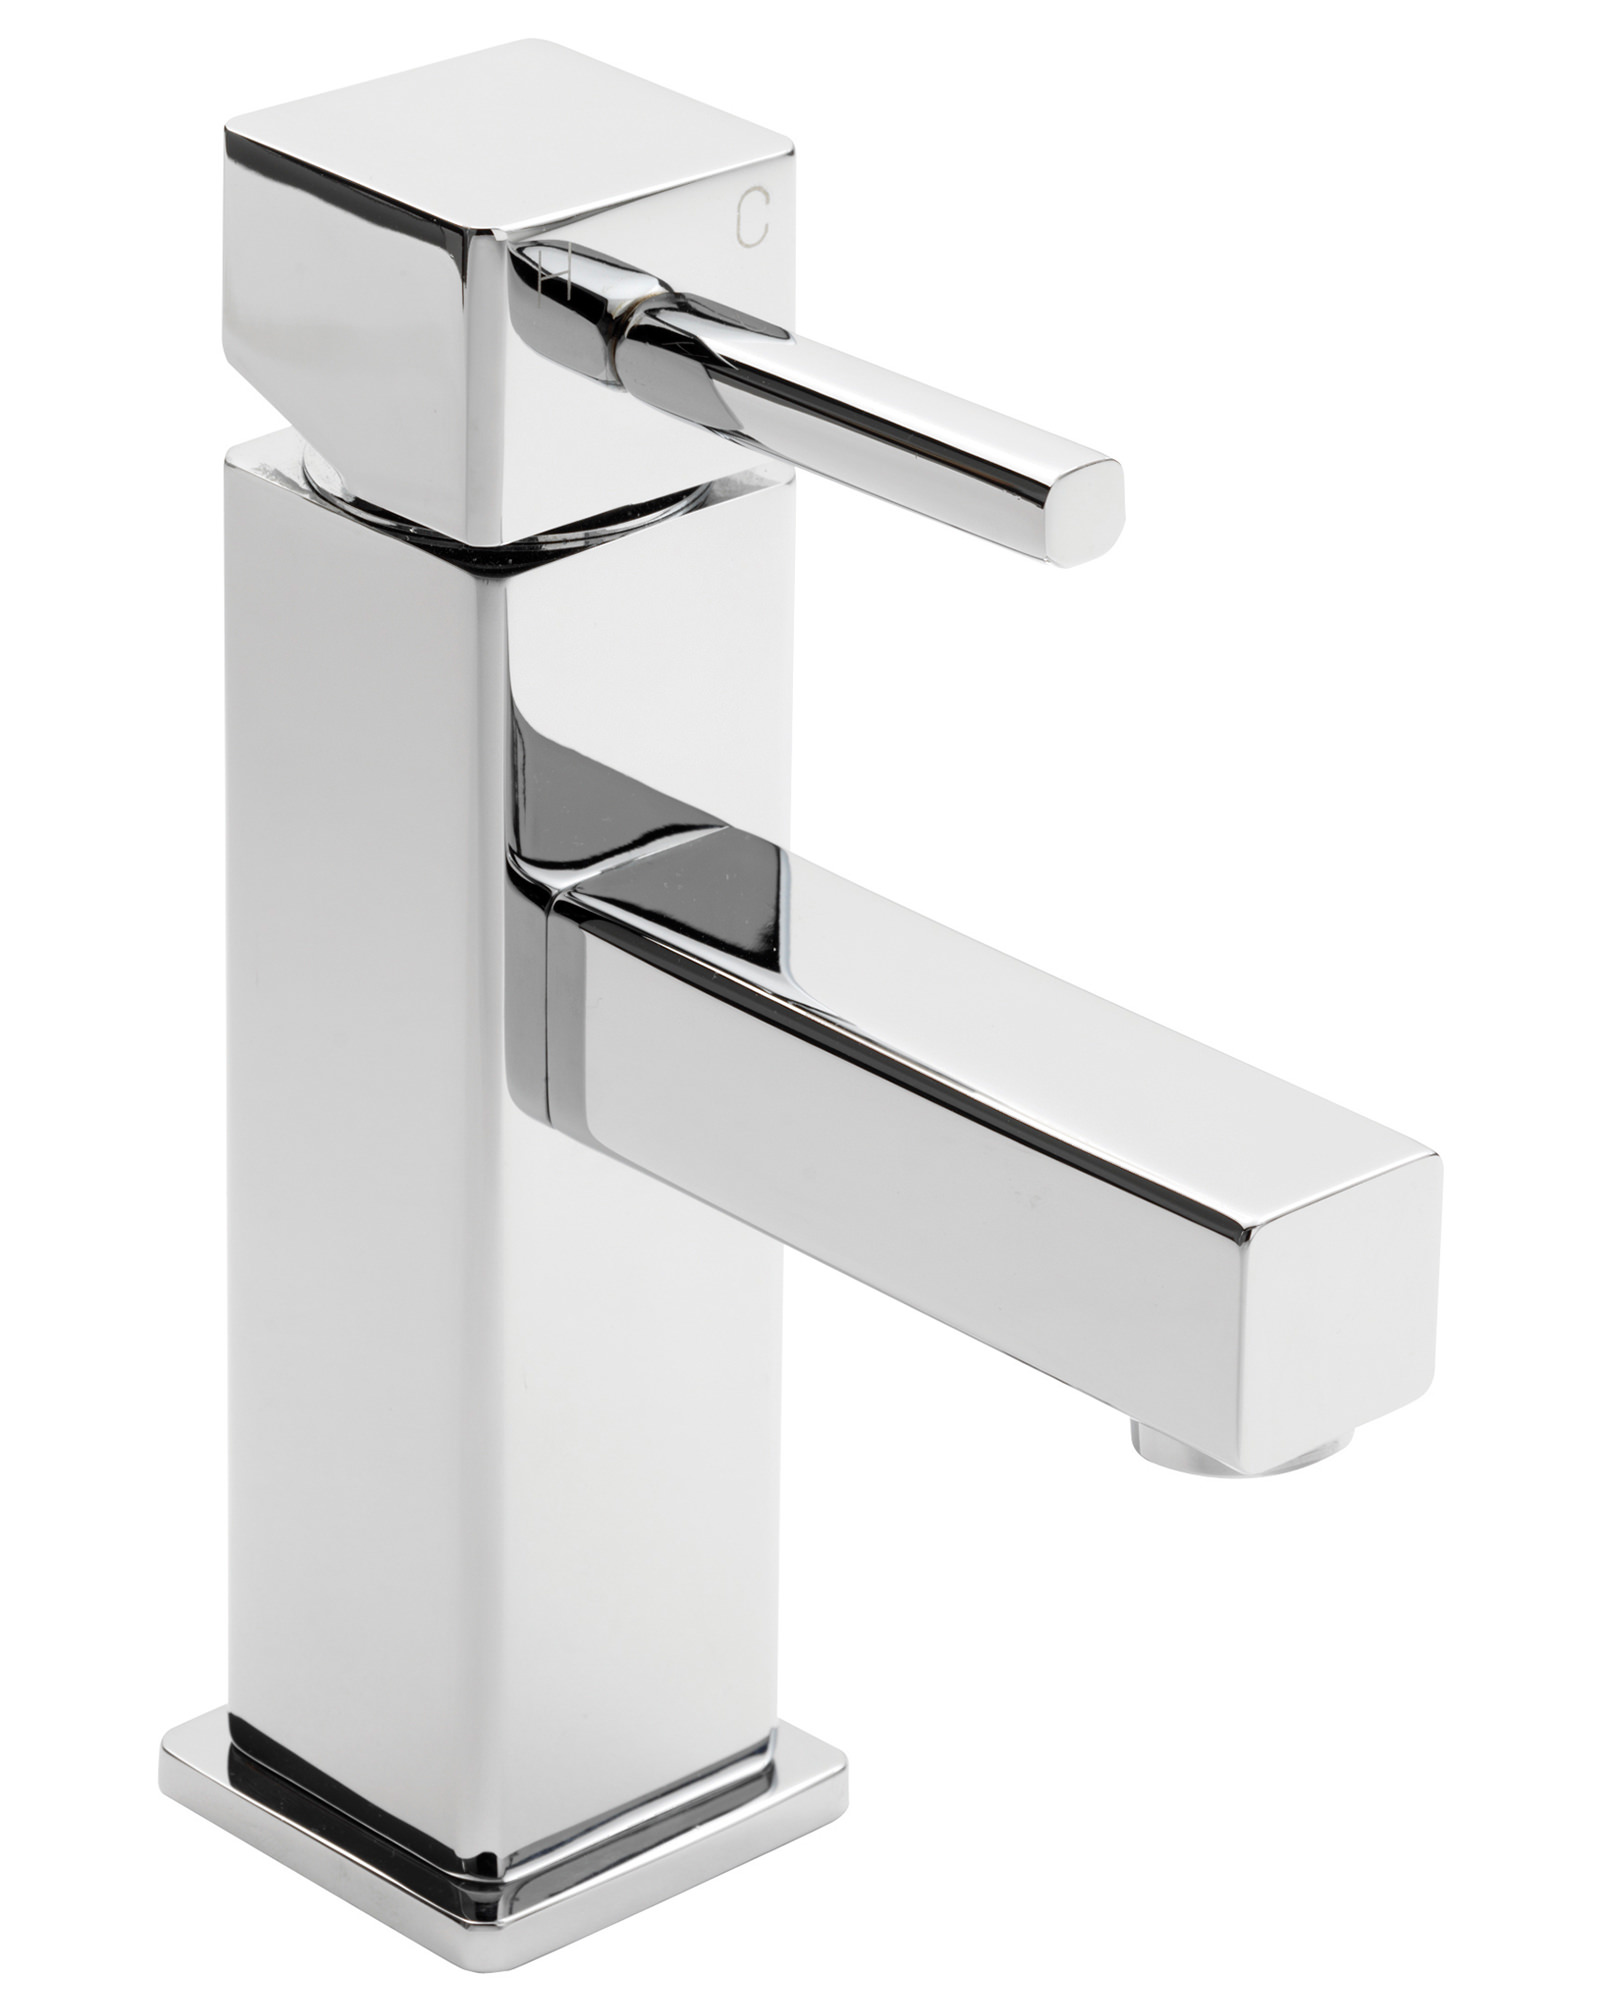 sagittarius pablo monobloc basin mixer tap with sprung. Black Bedroom Furniture Sets. Home Design Ideas